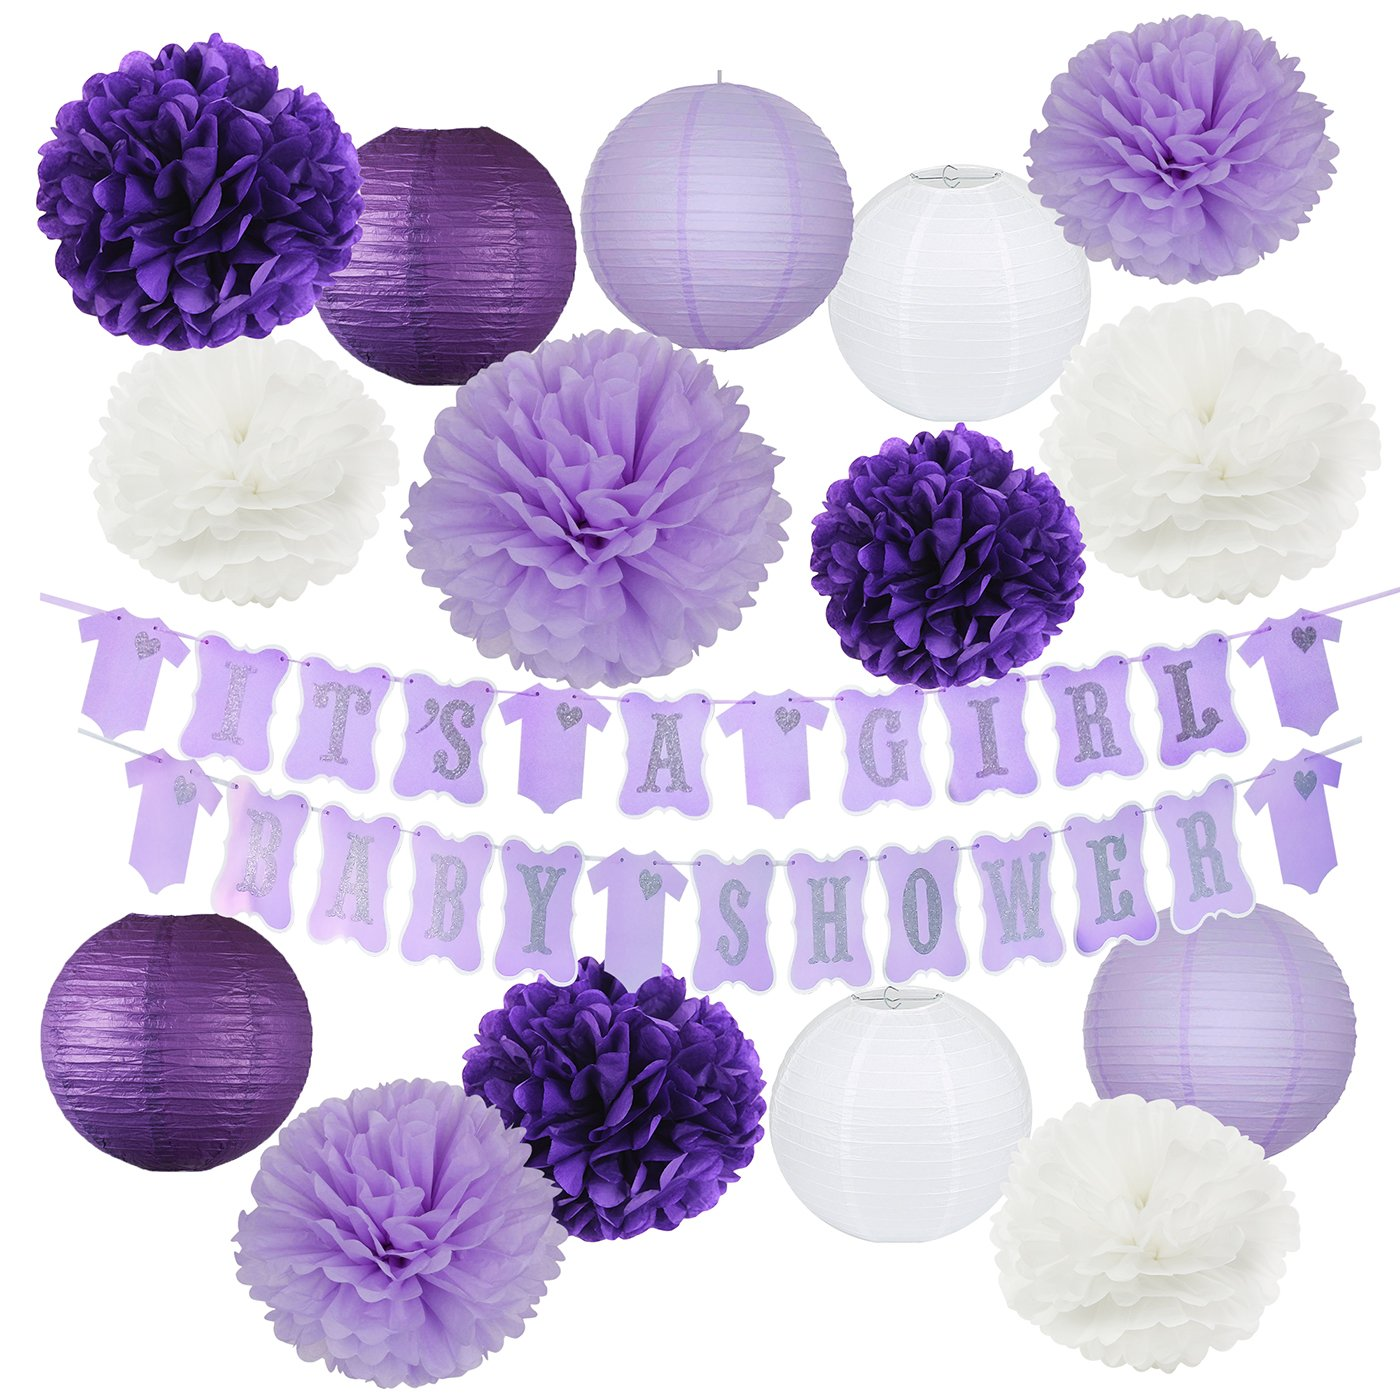 Elephant Purple Baby Shower Decorations It's A Girl Baby Shower Banner of  Purple and Silver Color with Tissue Pom Poms Girl Baby Birthday Decor Purple  Baby ...